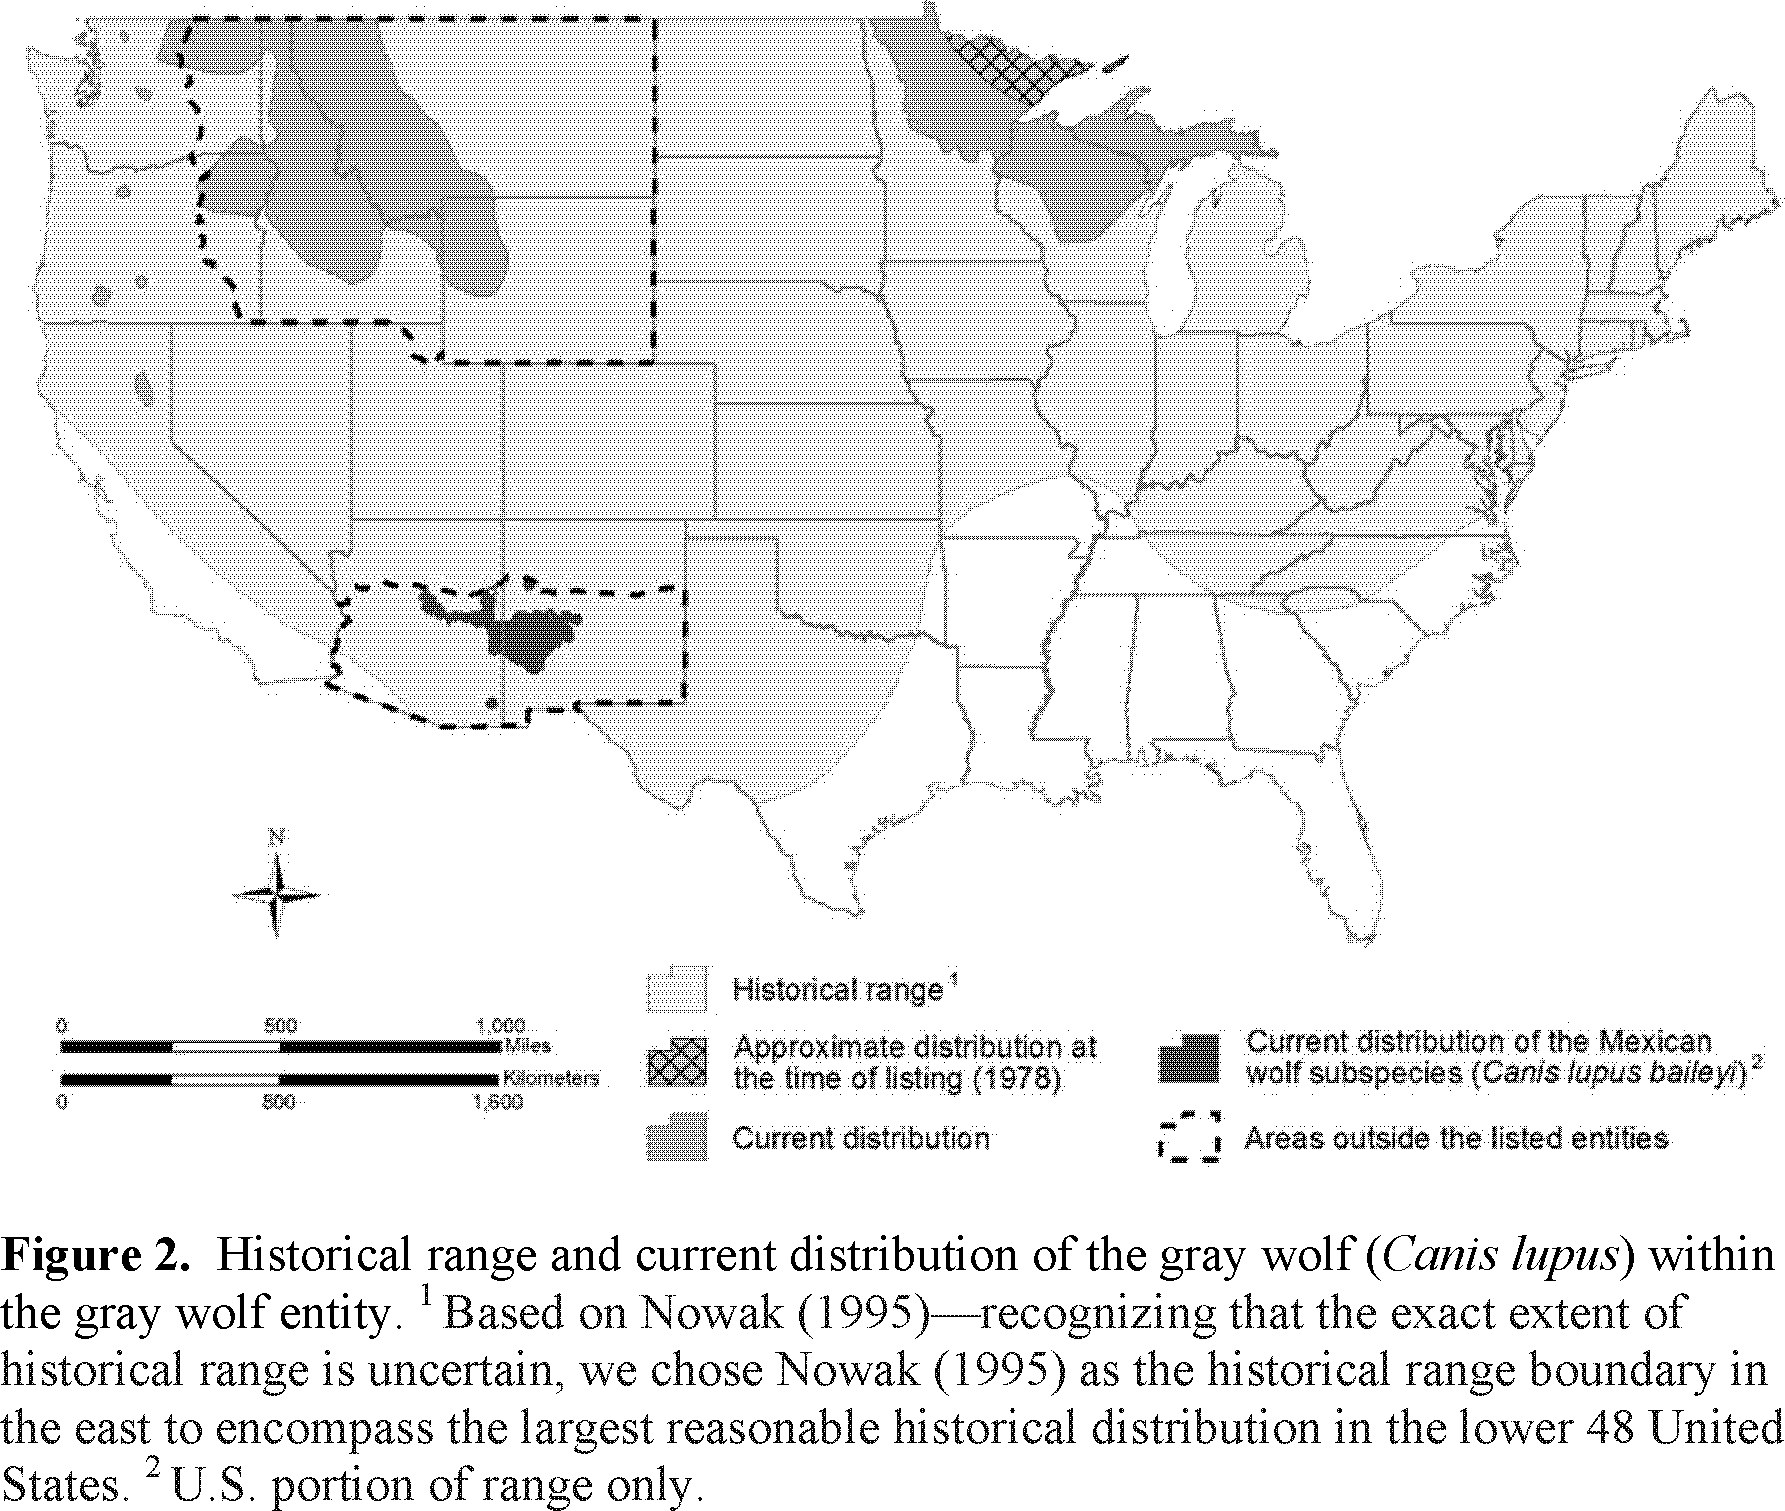 Federal Register Endangered And Threatened Wildlife And Plants Removing The Gray Wolf Canis Lupus